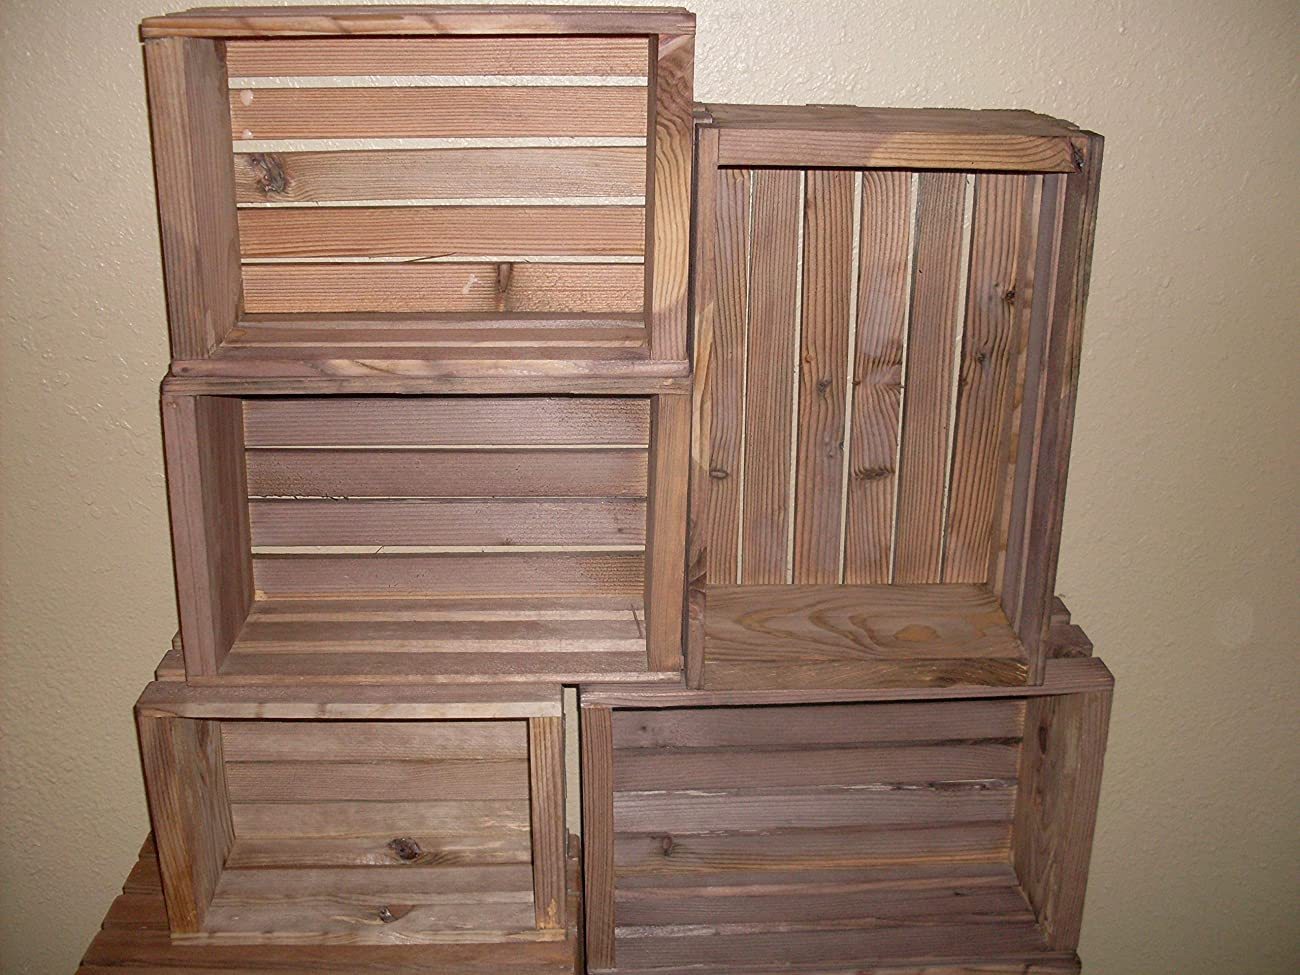 Rustic Nesting Wood Crates Set of 5 Made in the USA 0